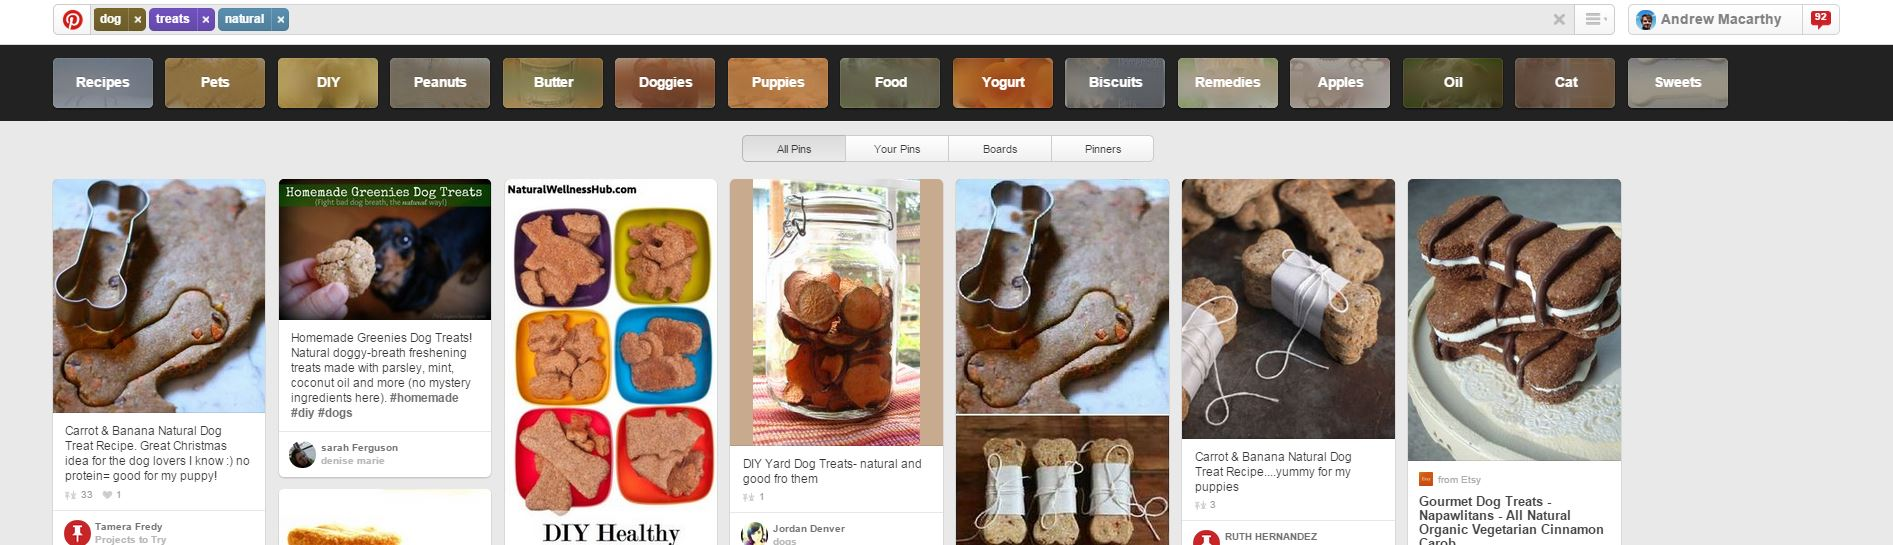 pinterest-guided-search-for-business-4.JPG